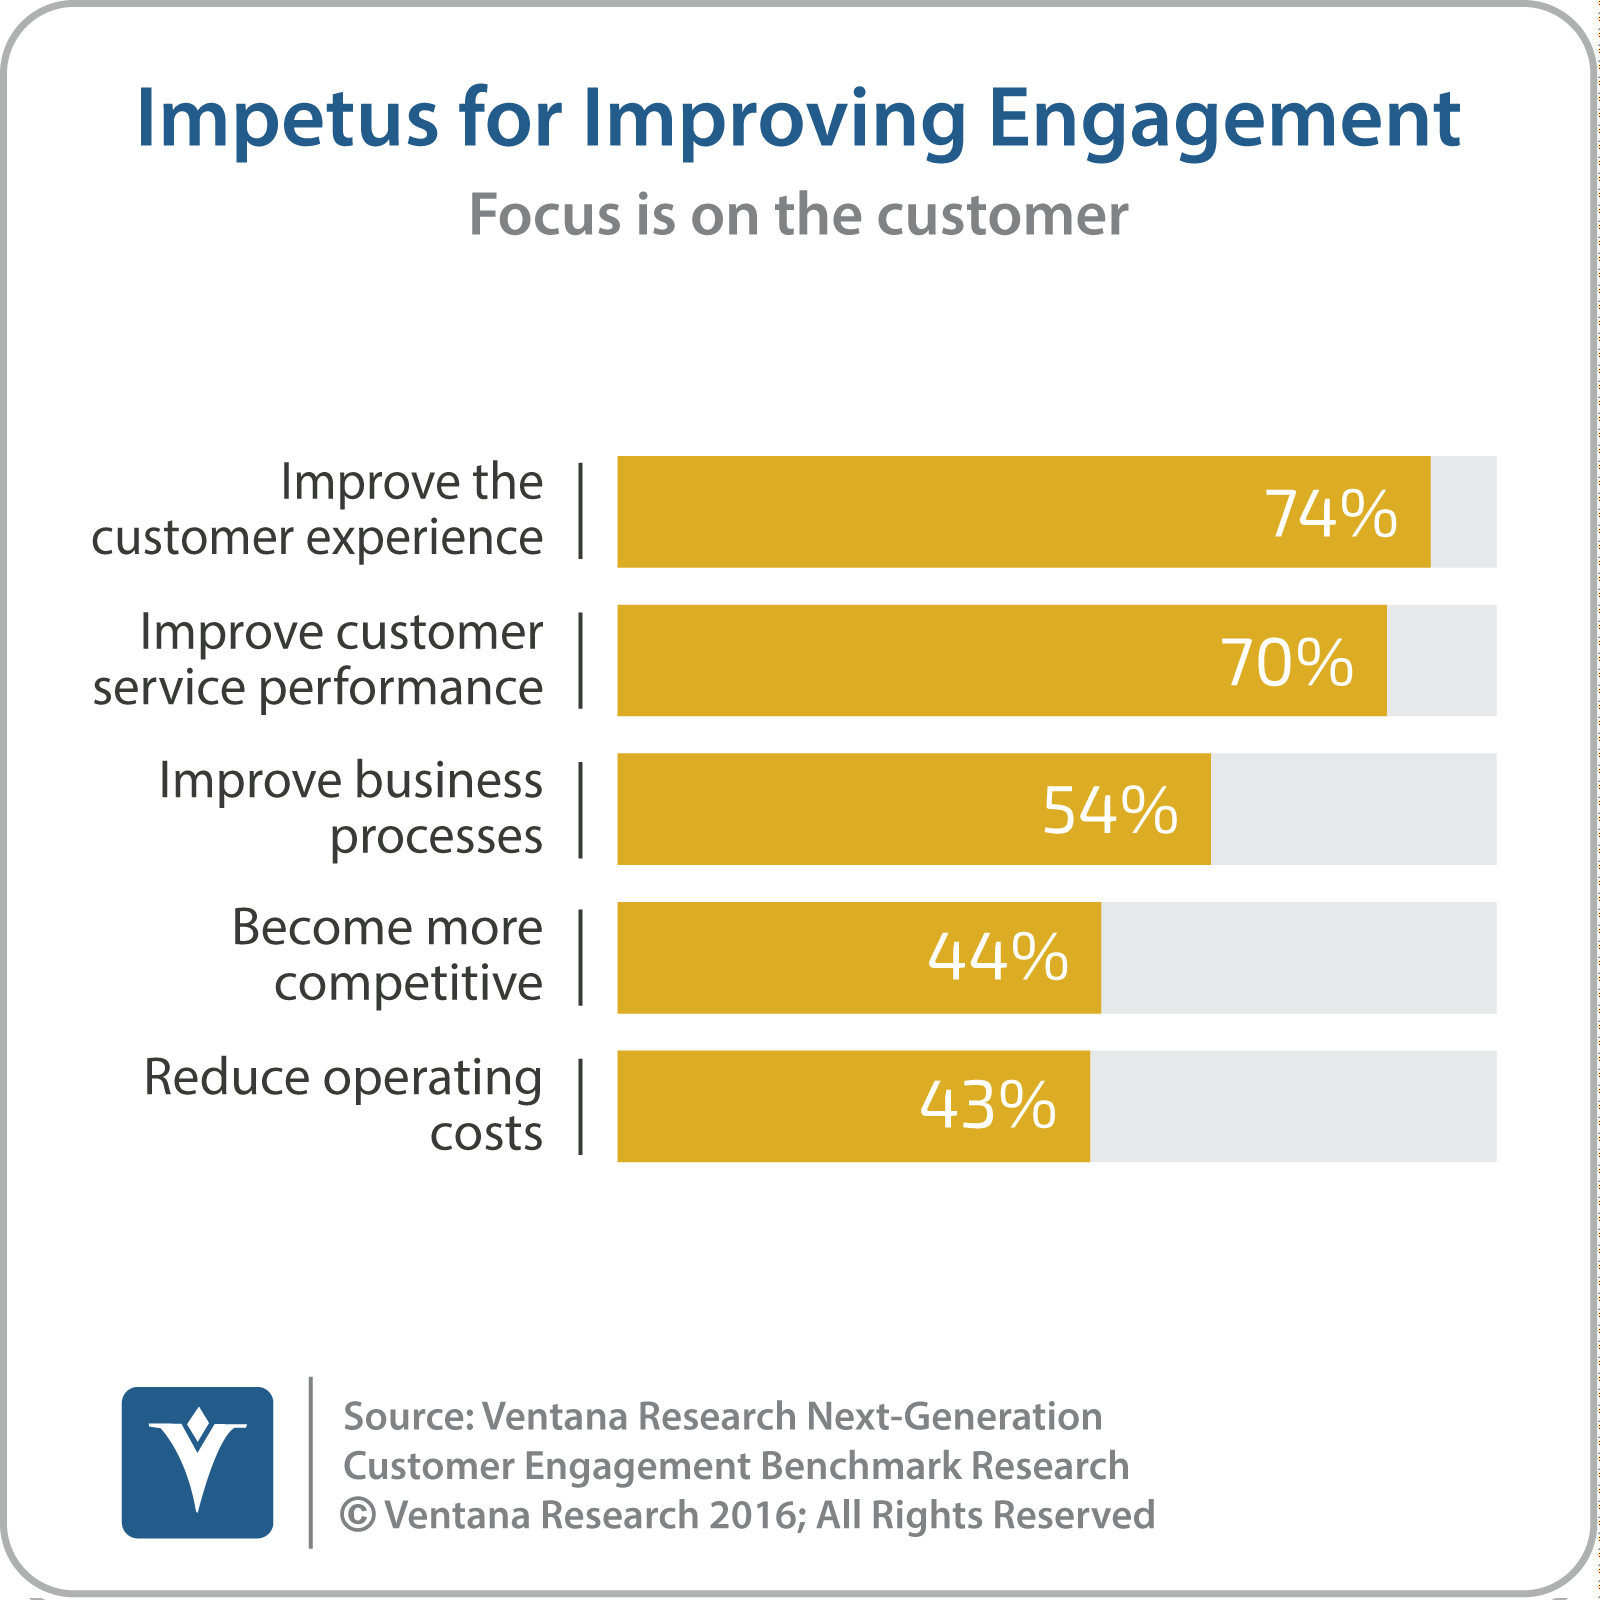 vr_NGCE_Research_01_impetus_for_improving_engagement_updated-1.png